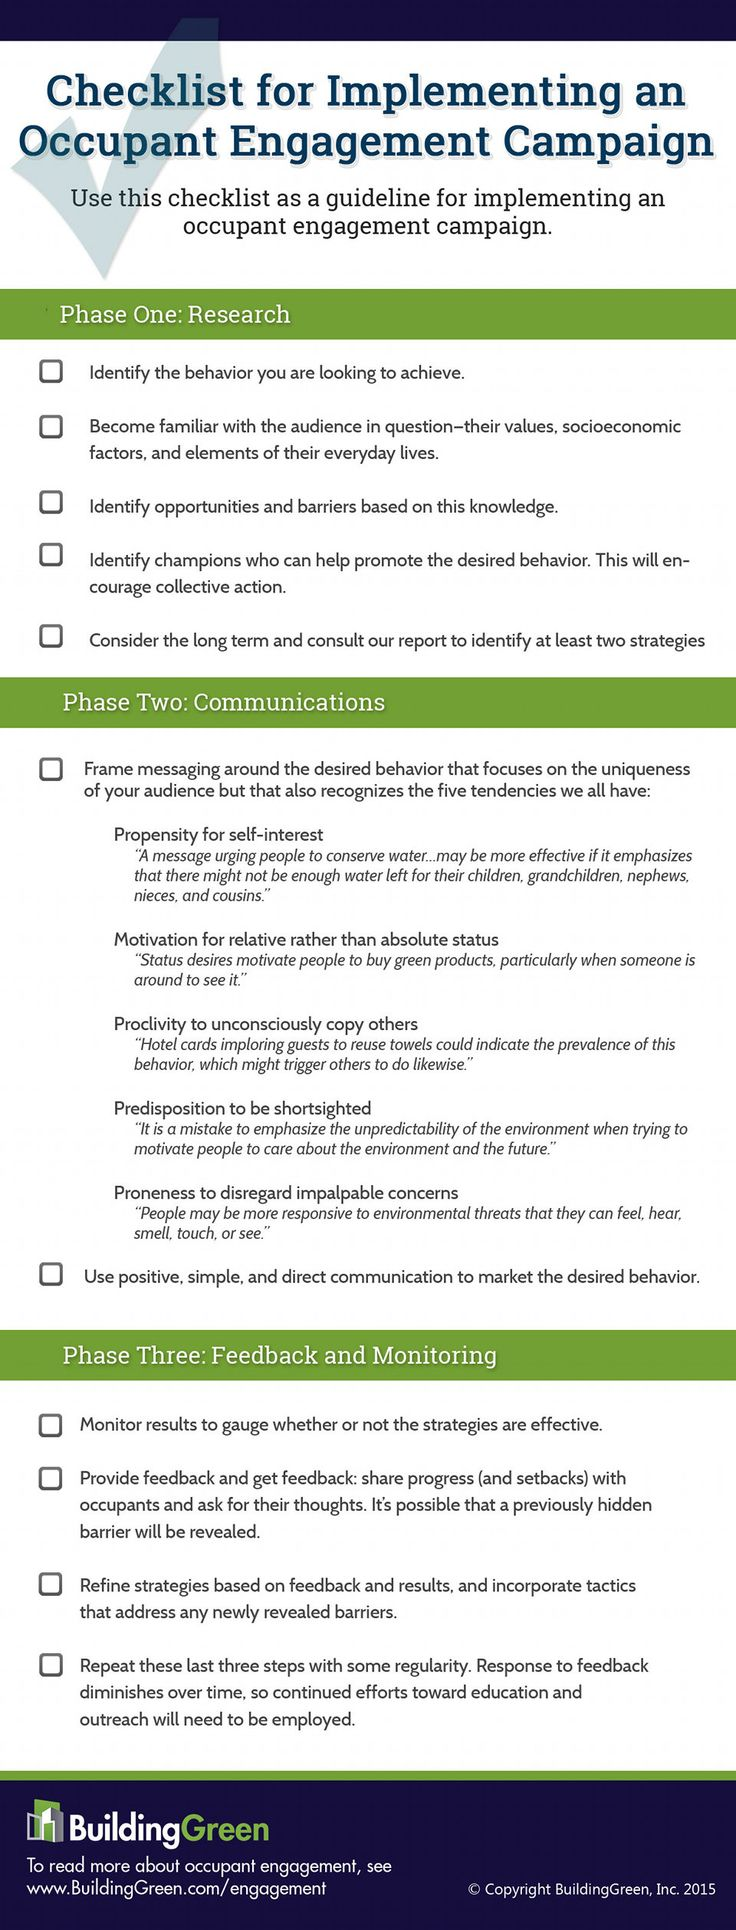 Implementing an Occupant Engagement Campaign? Use this checklist as an easy guideline!